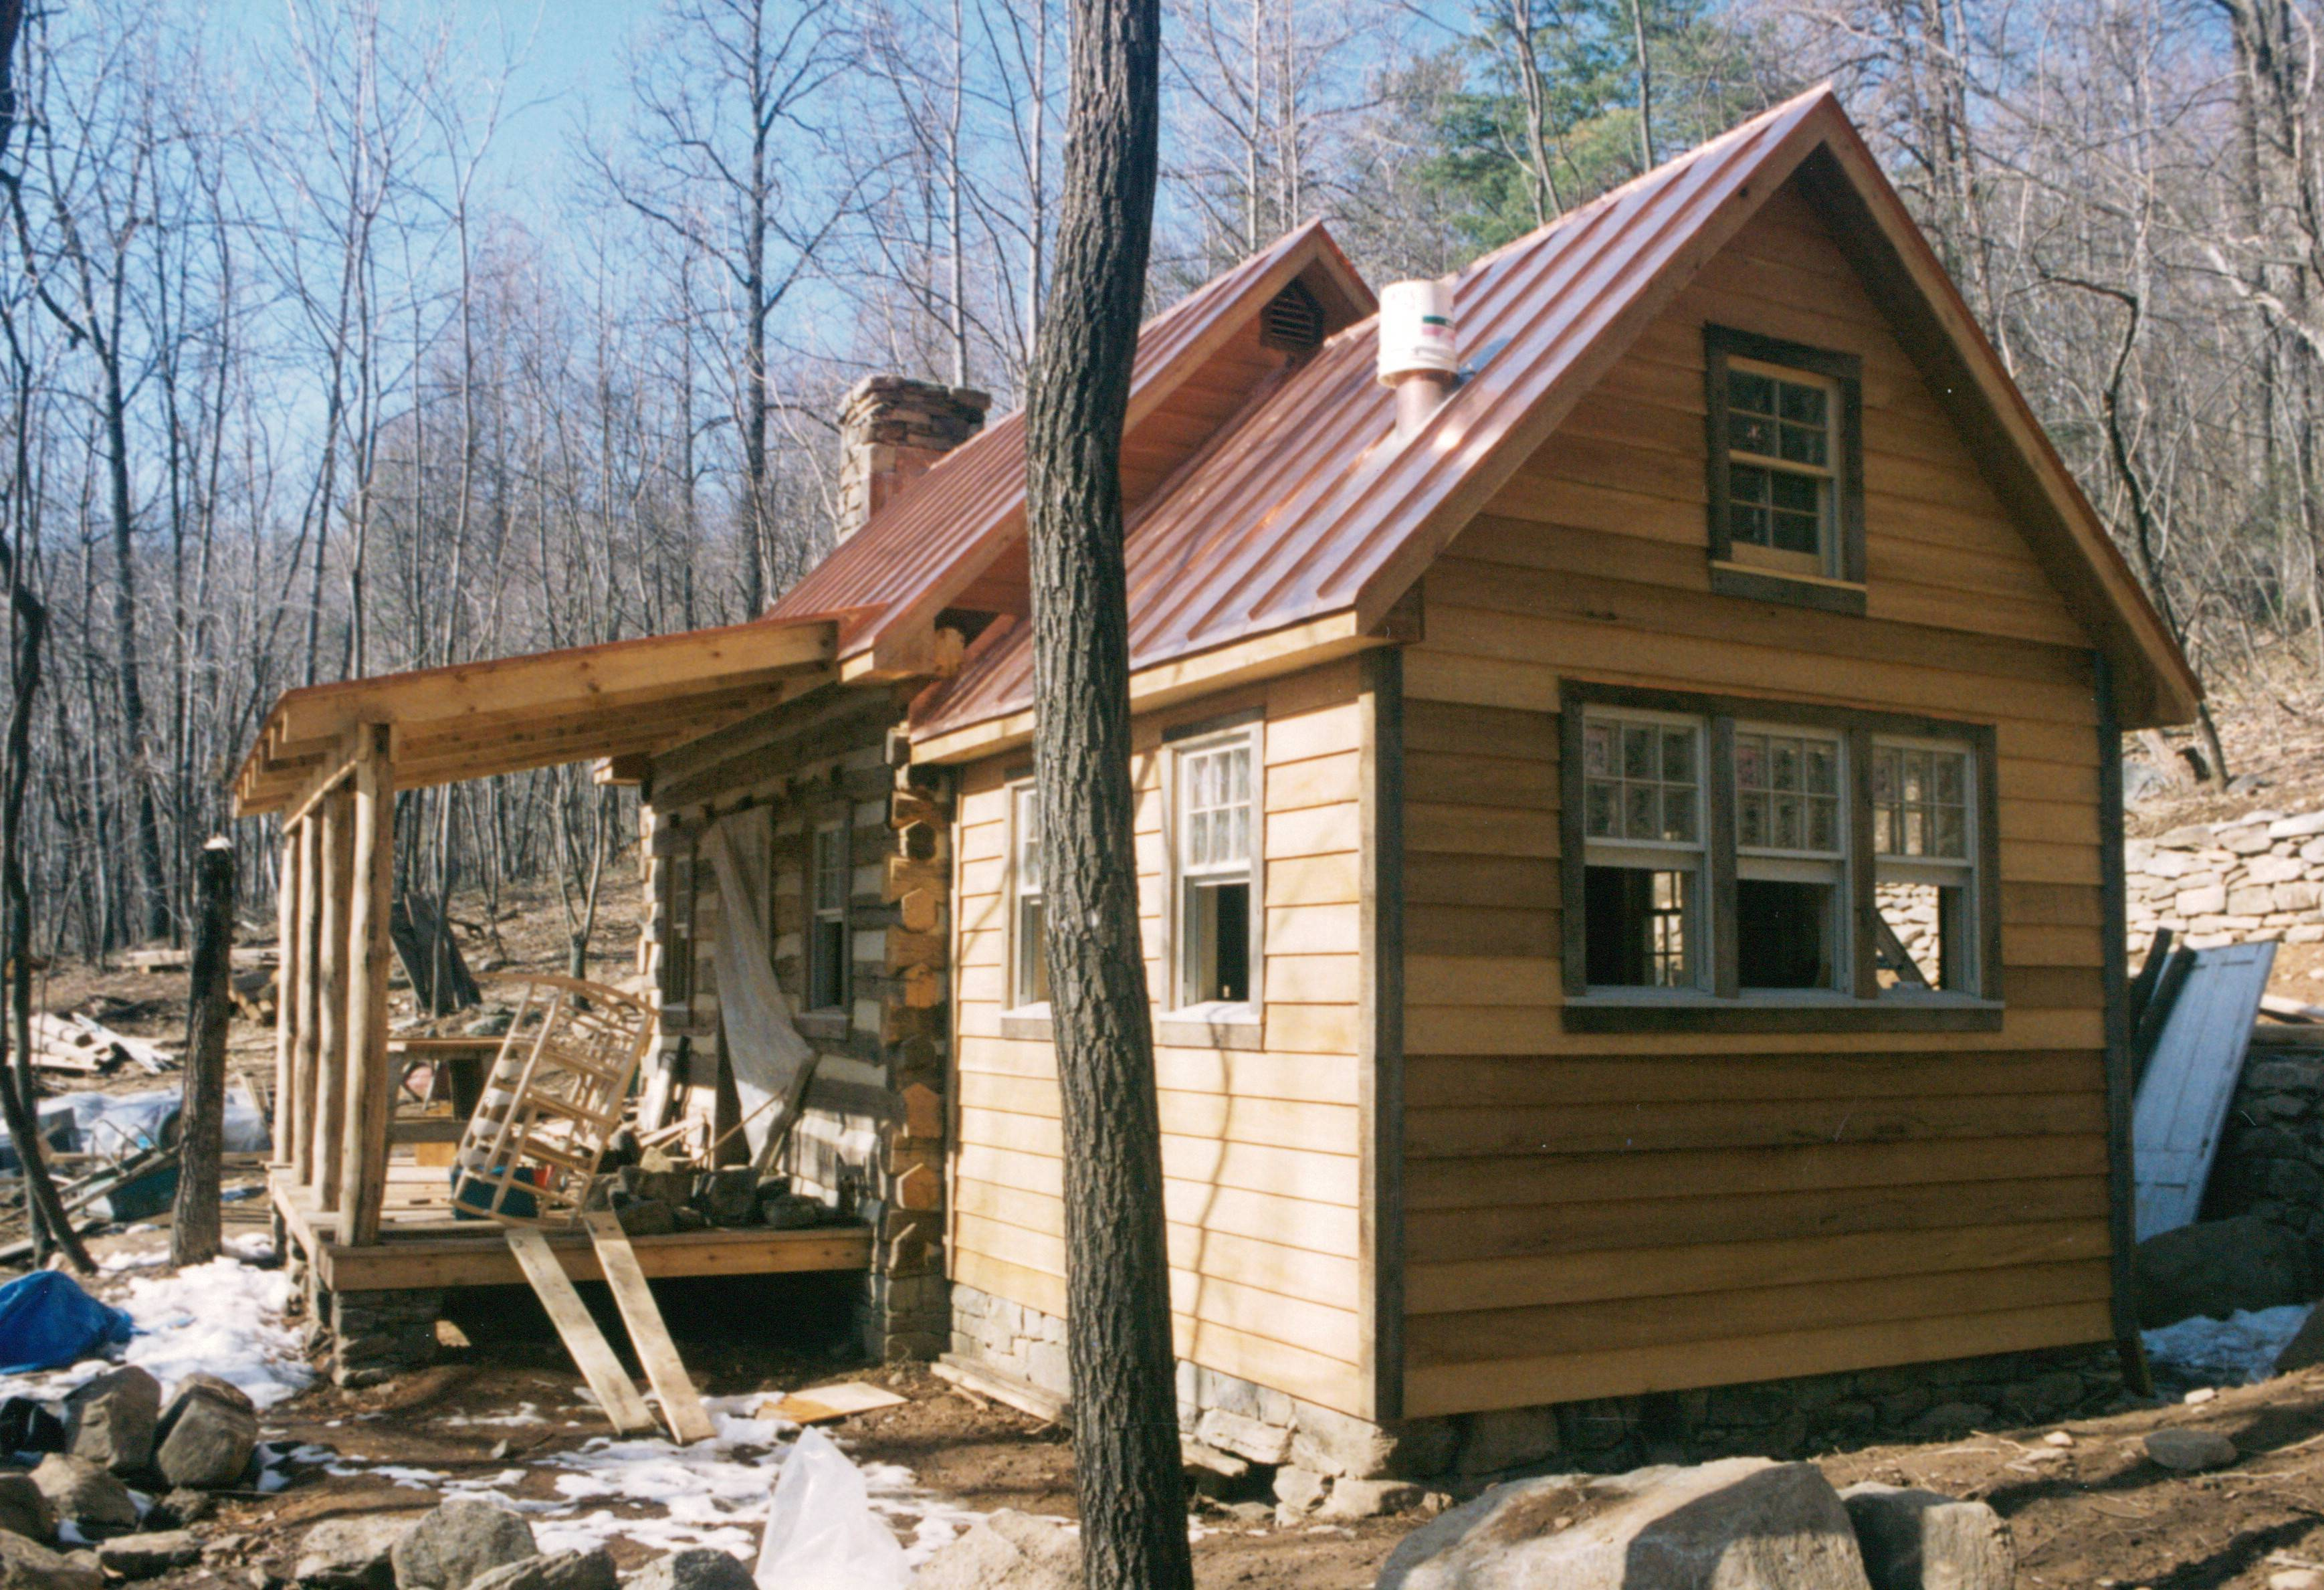 Part Four Building Rustic Cabin Handmade Houses